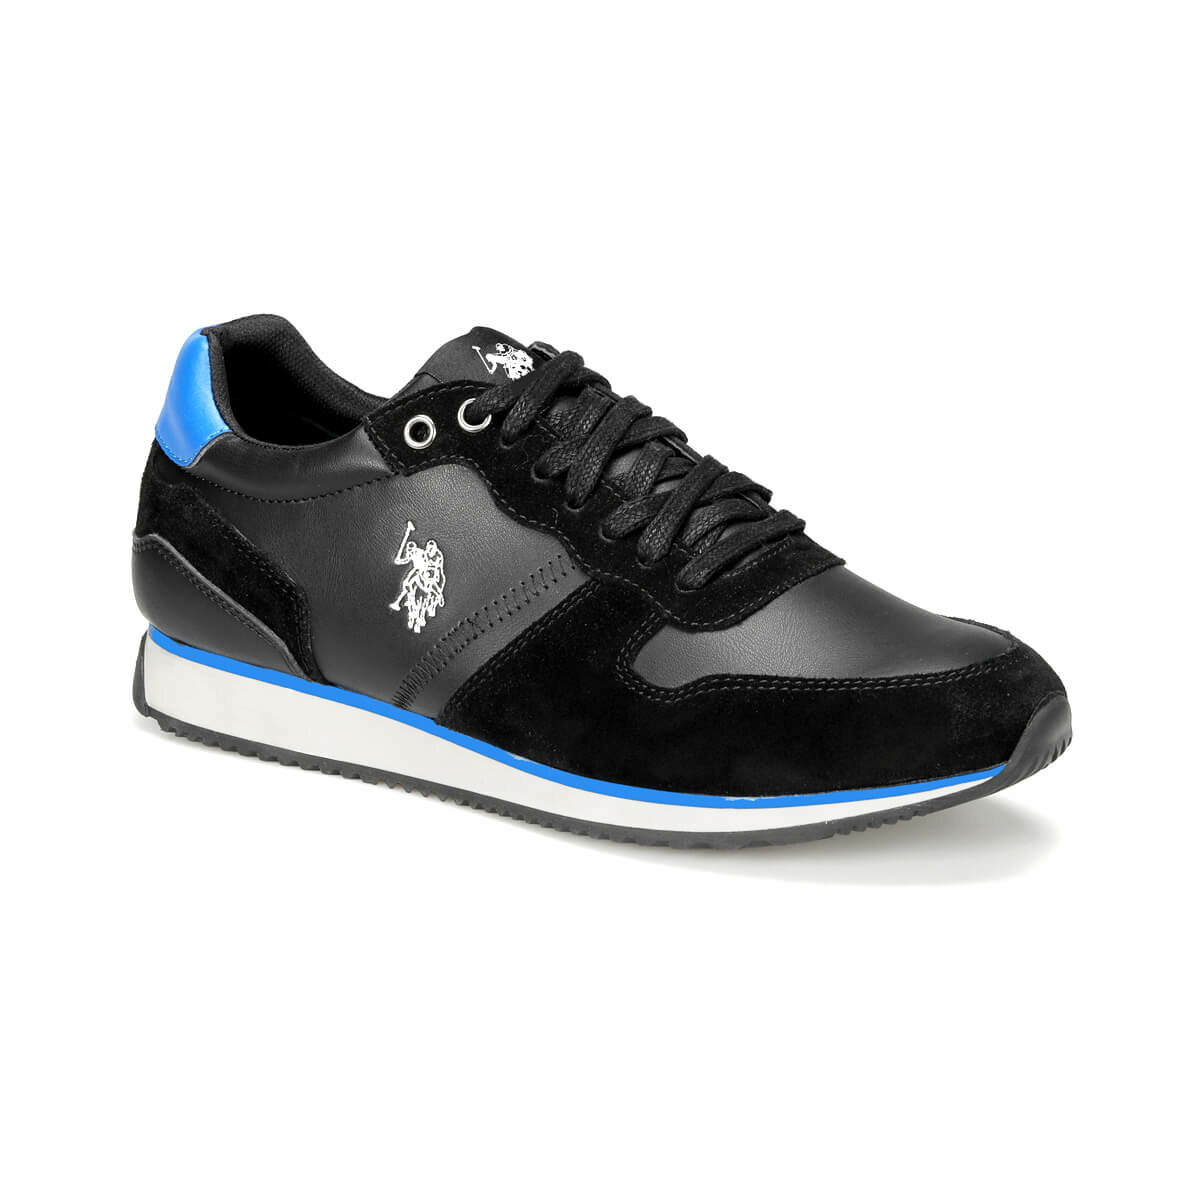 FLO MAC WT 9PR Black Men 'S Sneaker Shoes U.S. POLO ASSN.